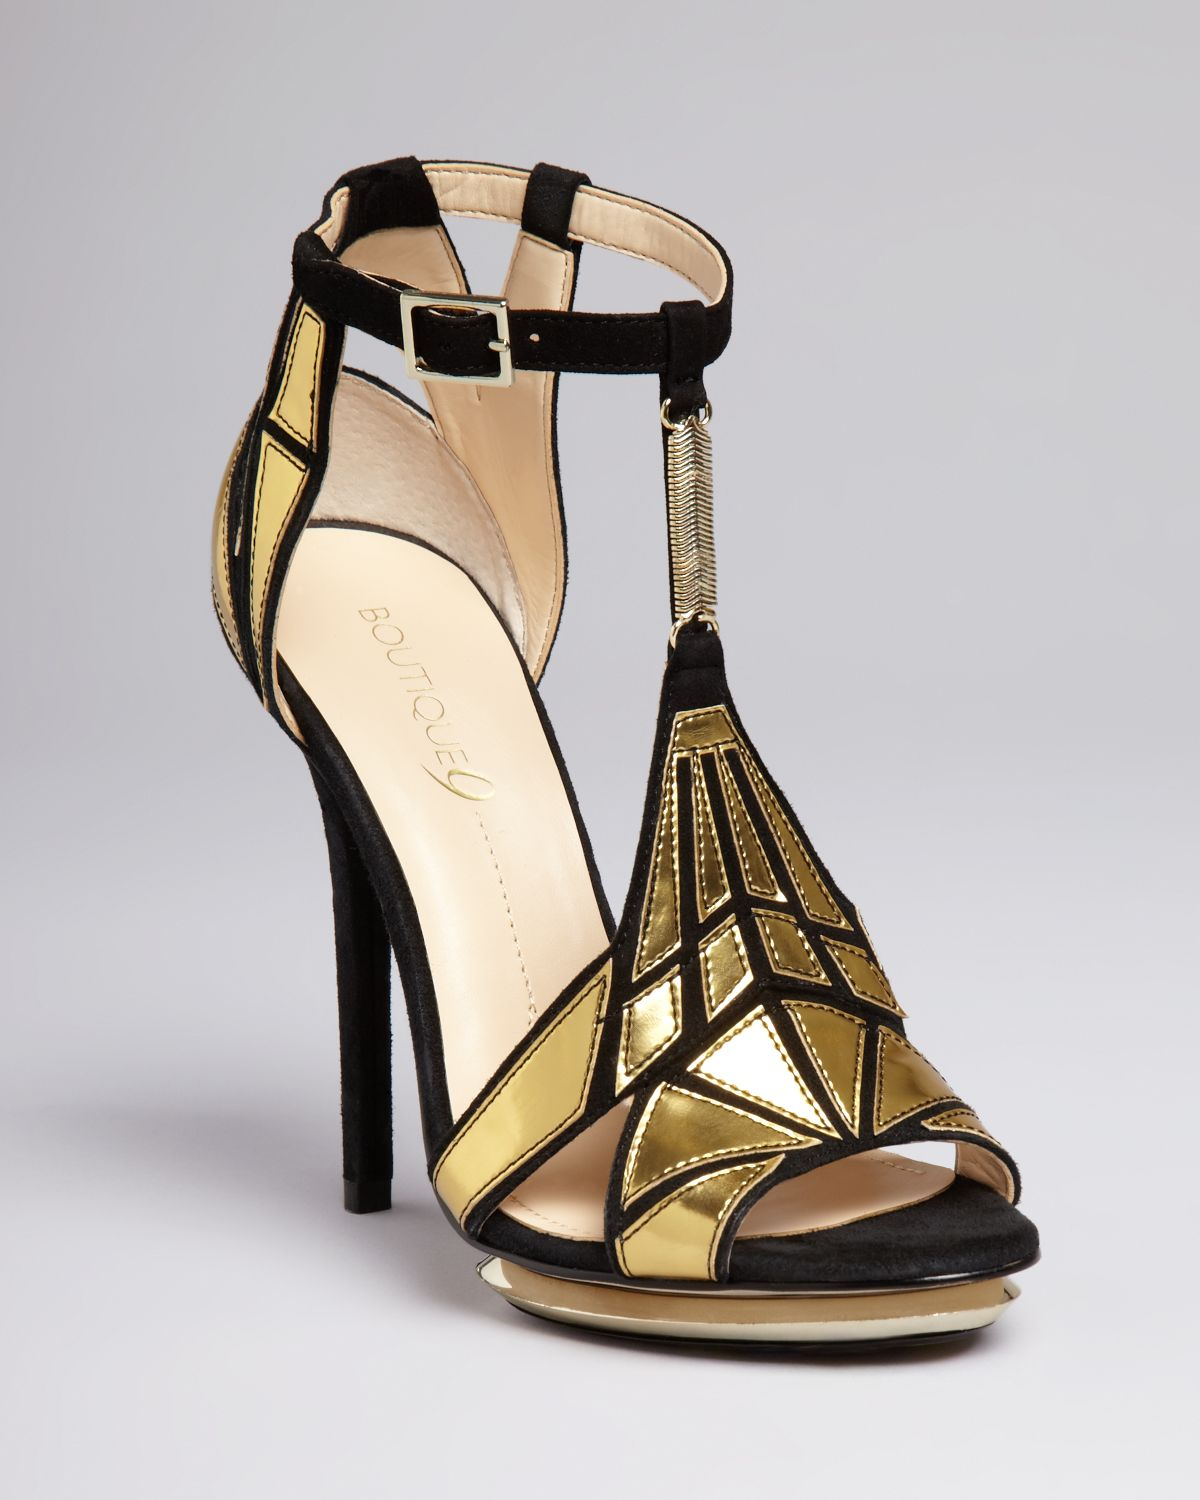 Lyst Boutique 9 Platform Evening Sandals Orseena Art